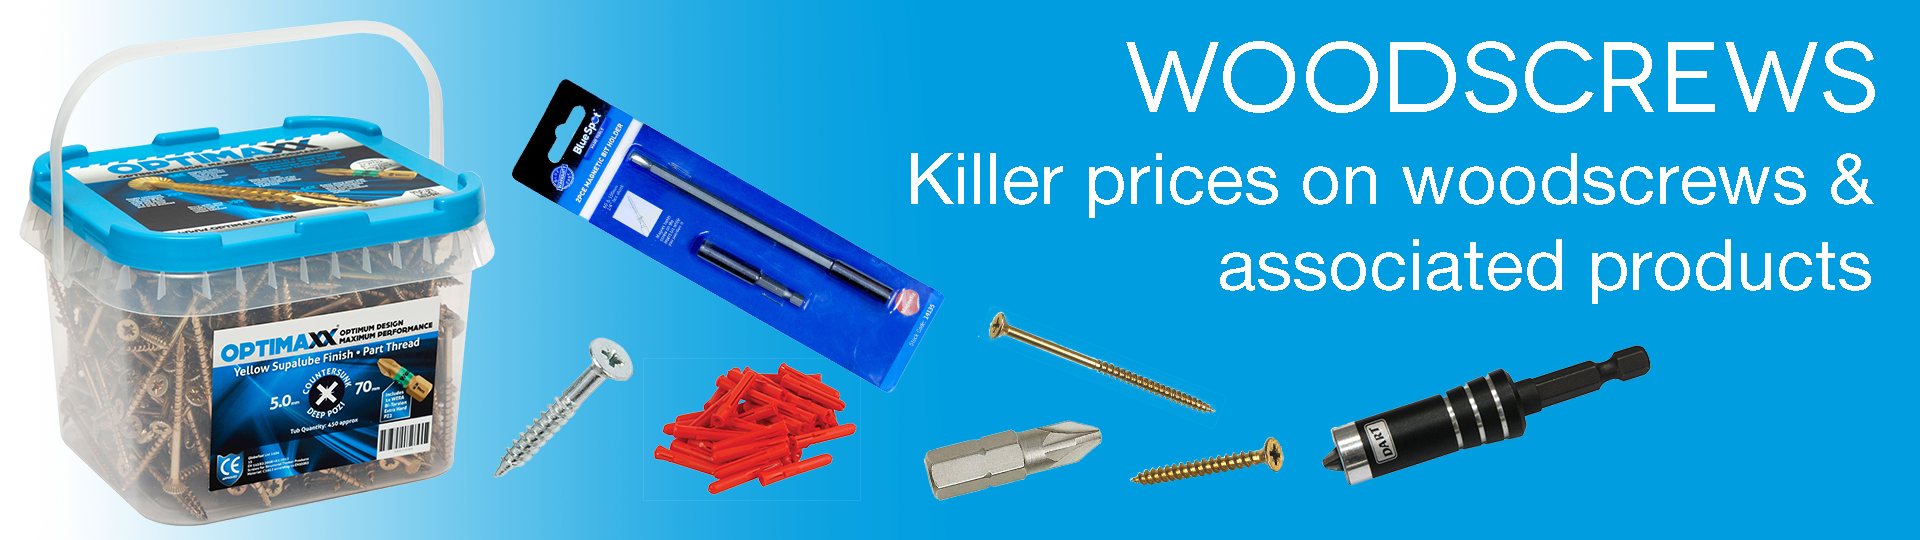 Woodscrews & associated products